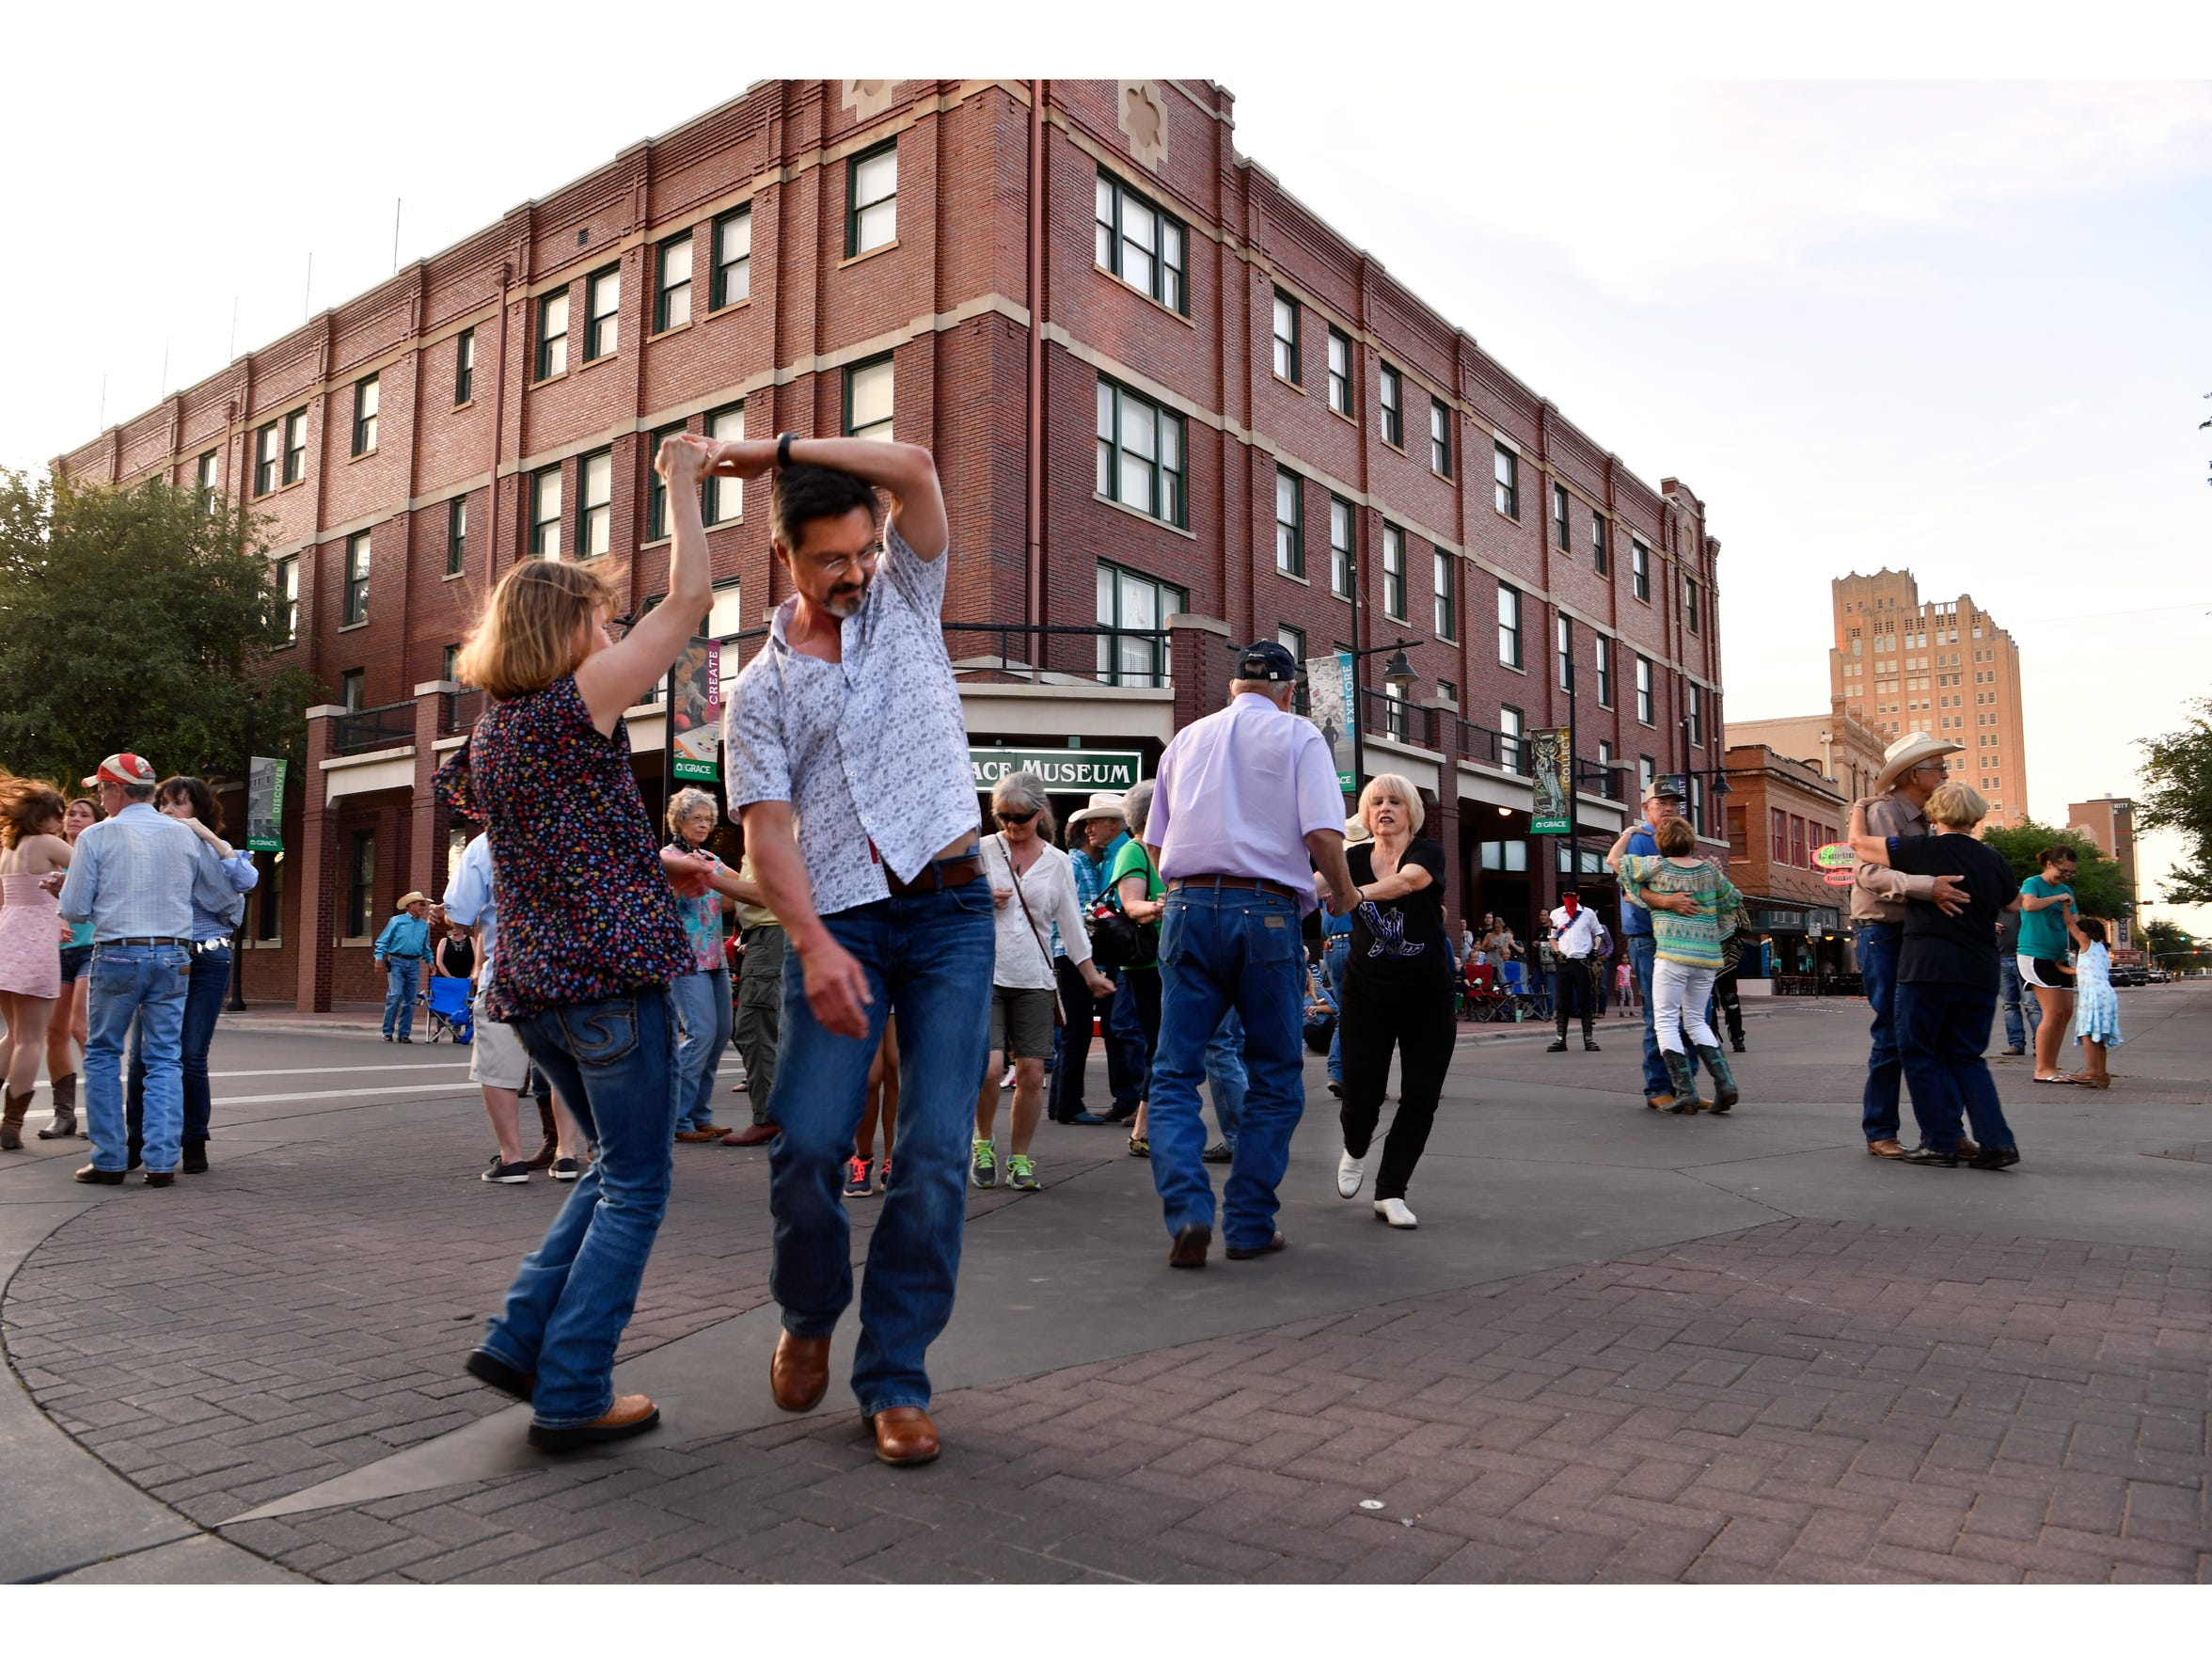 It's two-step time downtown after the annual Western Heritage Classic parade.